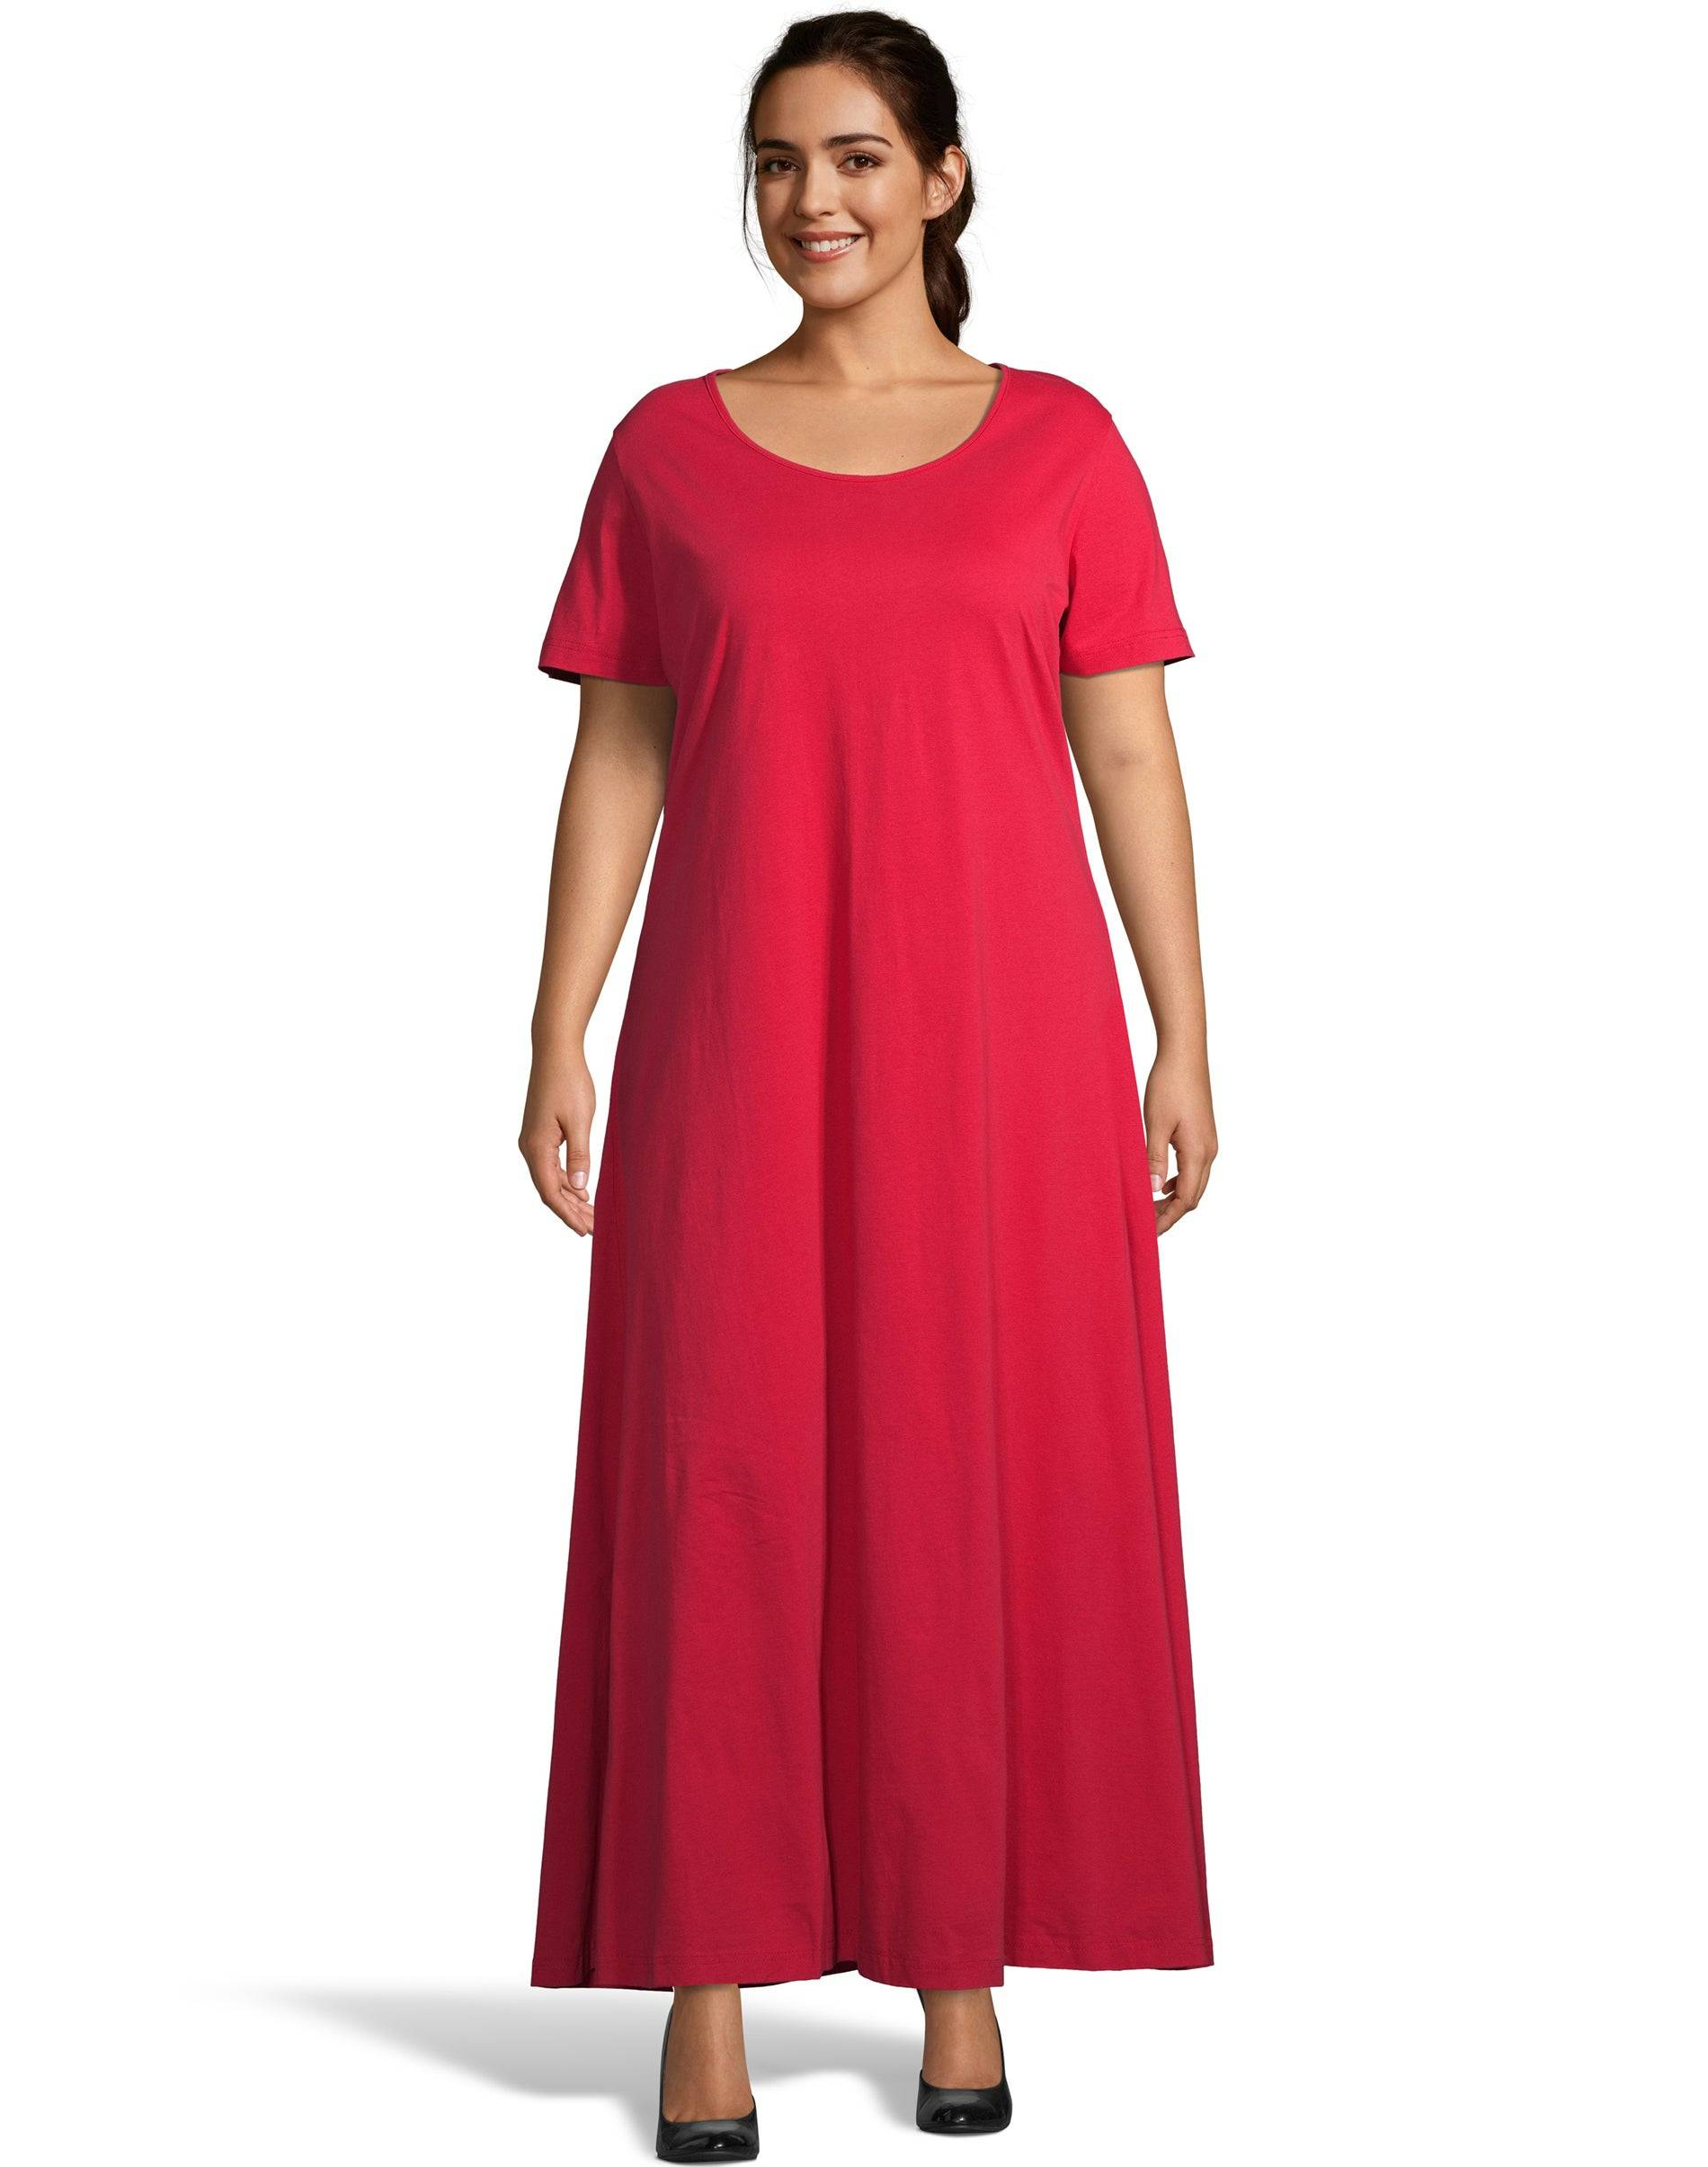 Just My Size Jersey Matchables Maxi Dress Fire Roasted Red 3X Women's